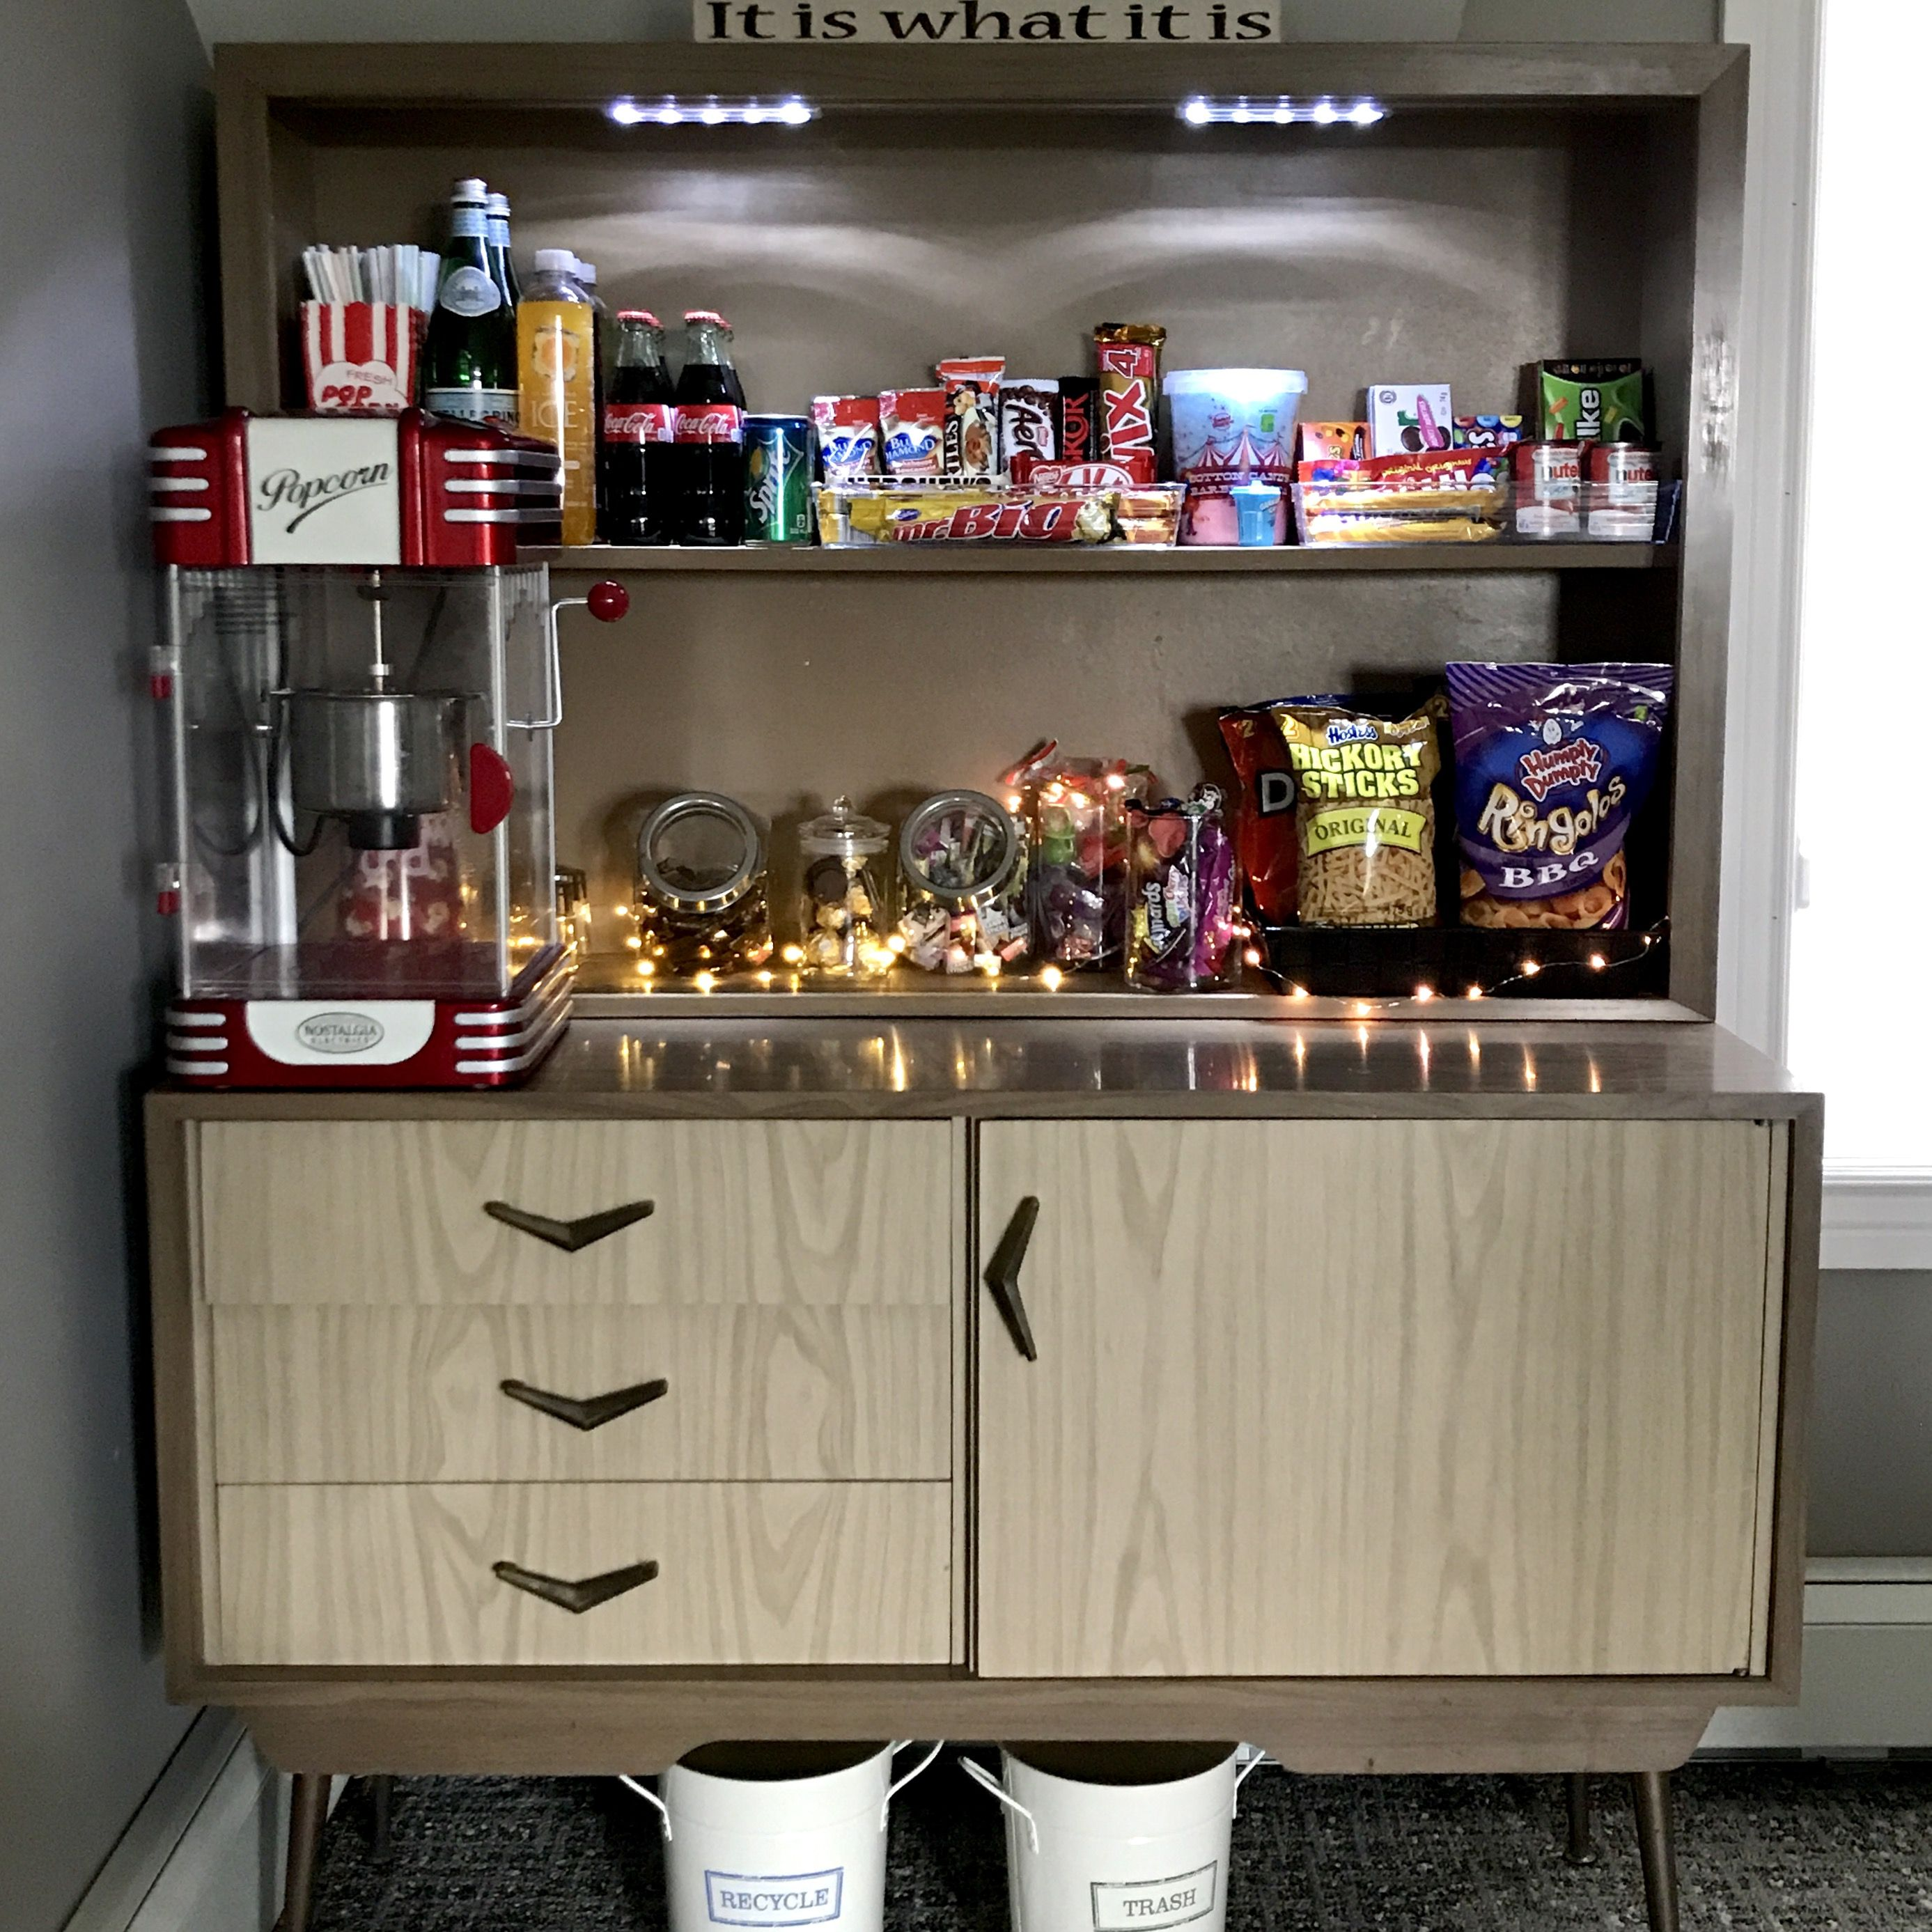 Modern Home Theatre Ideas: Cute Home Theatre Movie Night Concessions Stand, On Mid